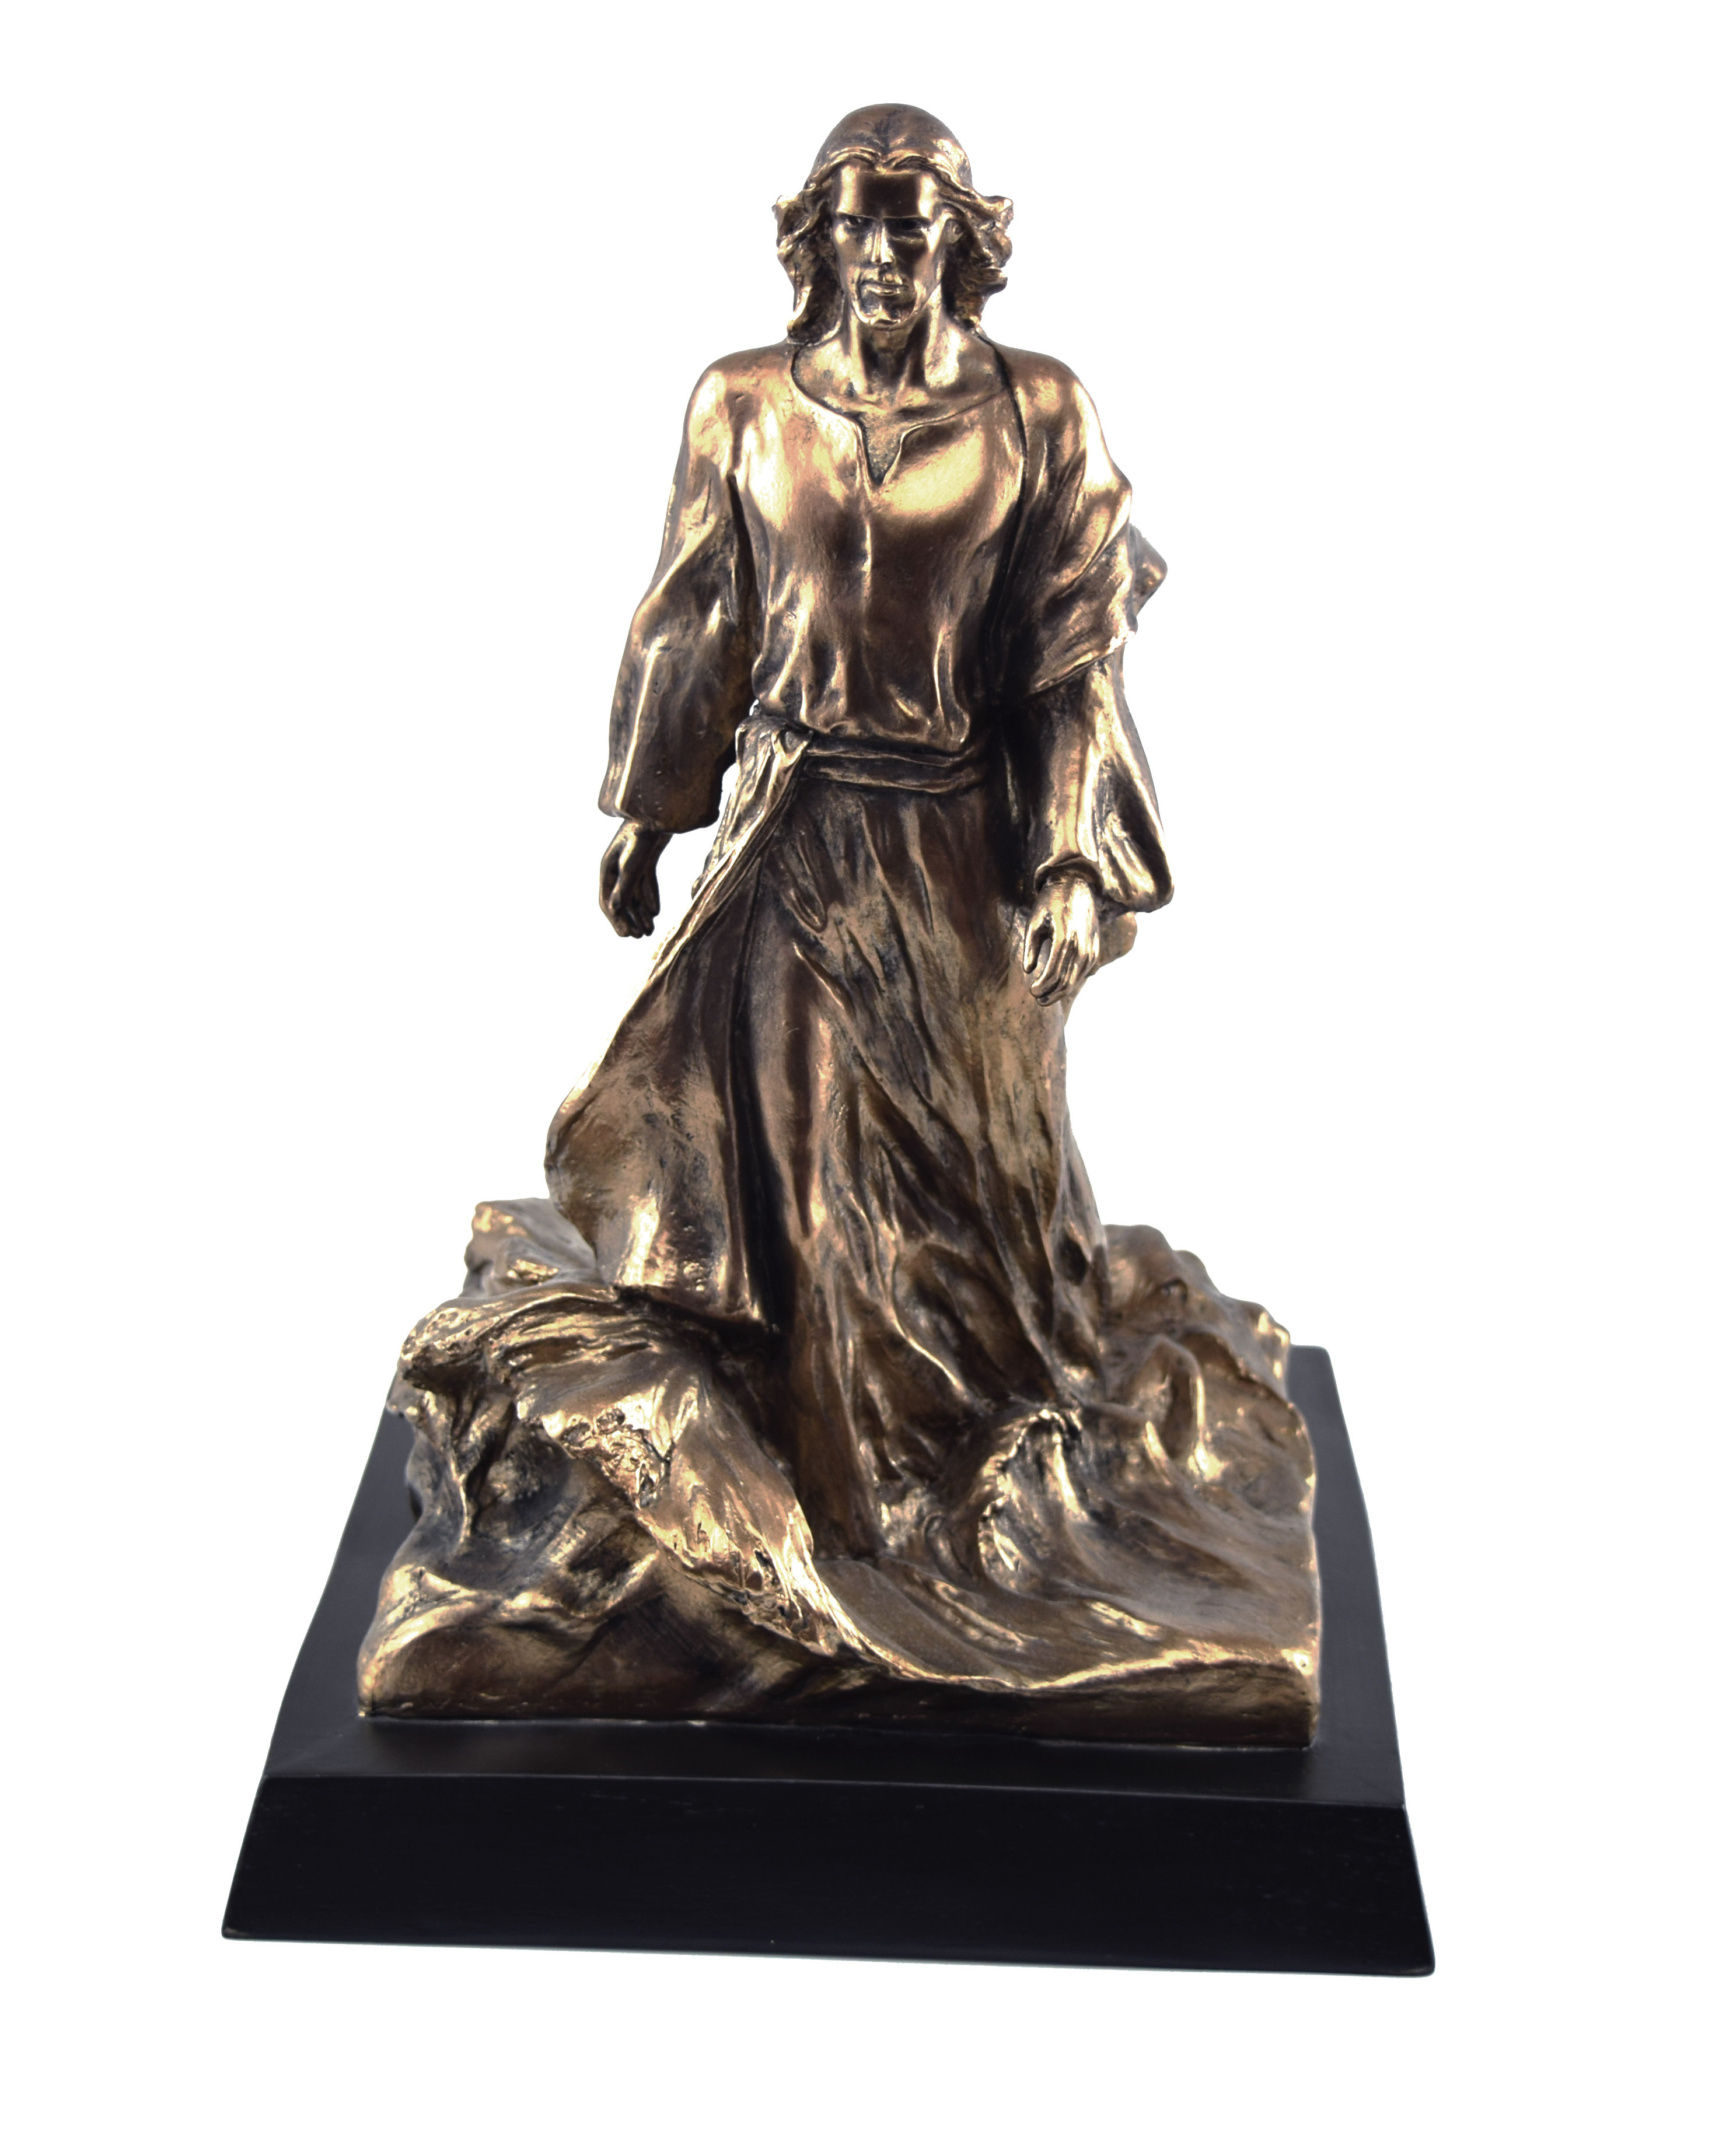 Jesus Christ, Bronze Statue of Jesus Christ, Christian Art, Christian Gift, Christmas Gift, Religious Art, Religious Gifts